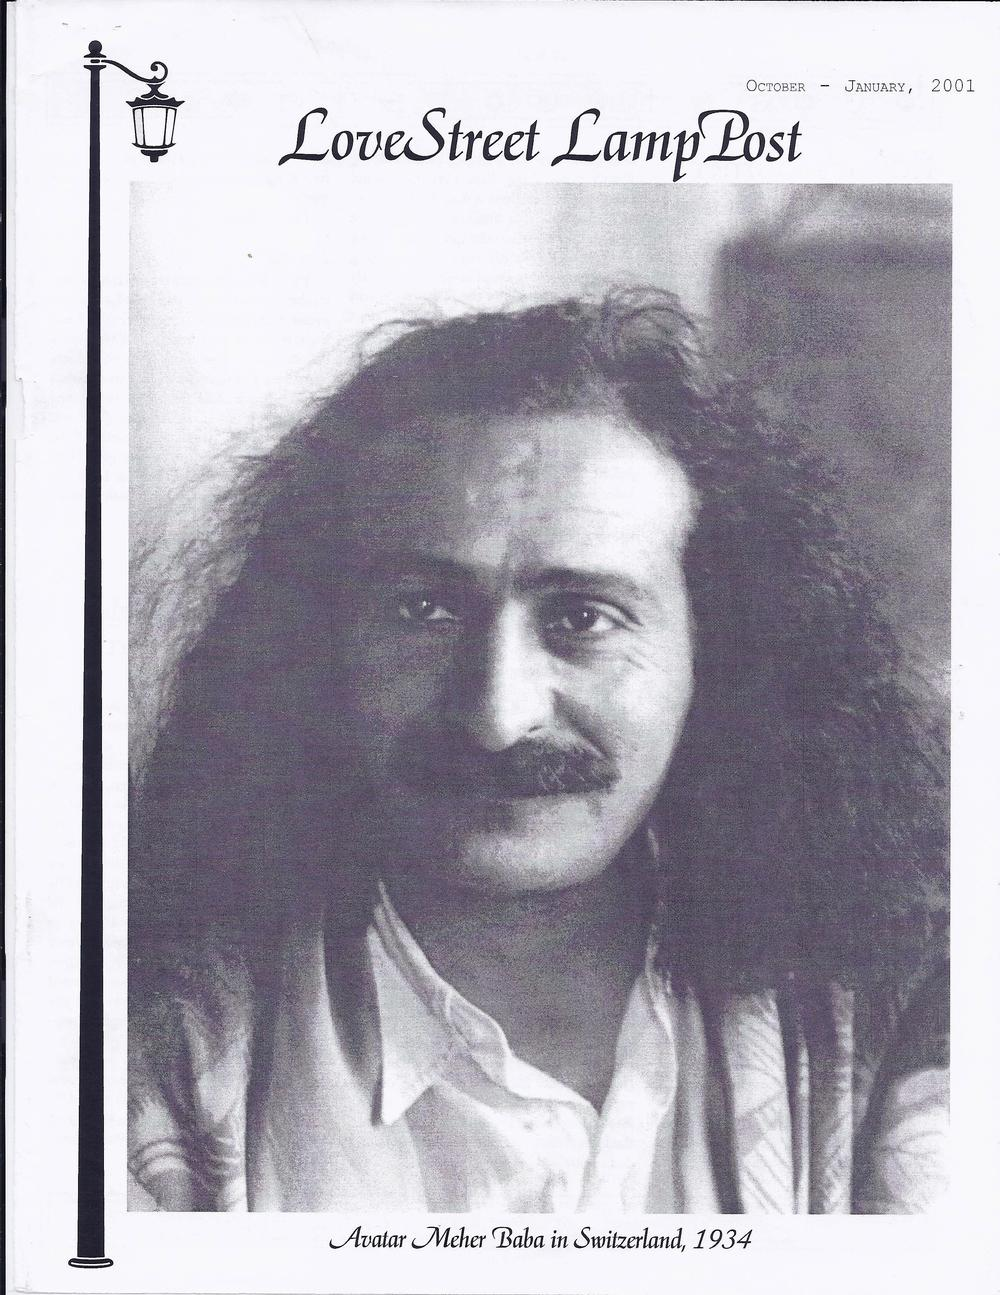 THE LAMP STREET LAMP POST cover of the October-January 2001 issue with Avatar Meher Baba from which this article is excerpted.